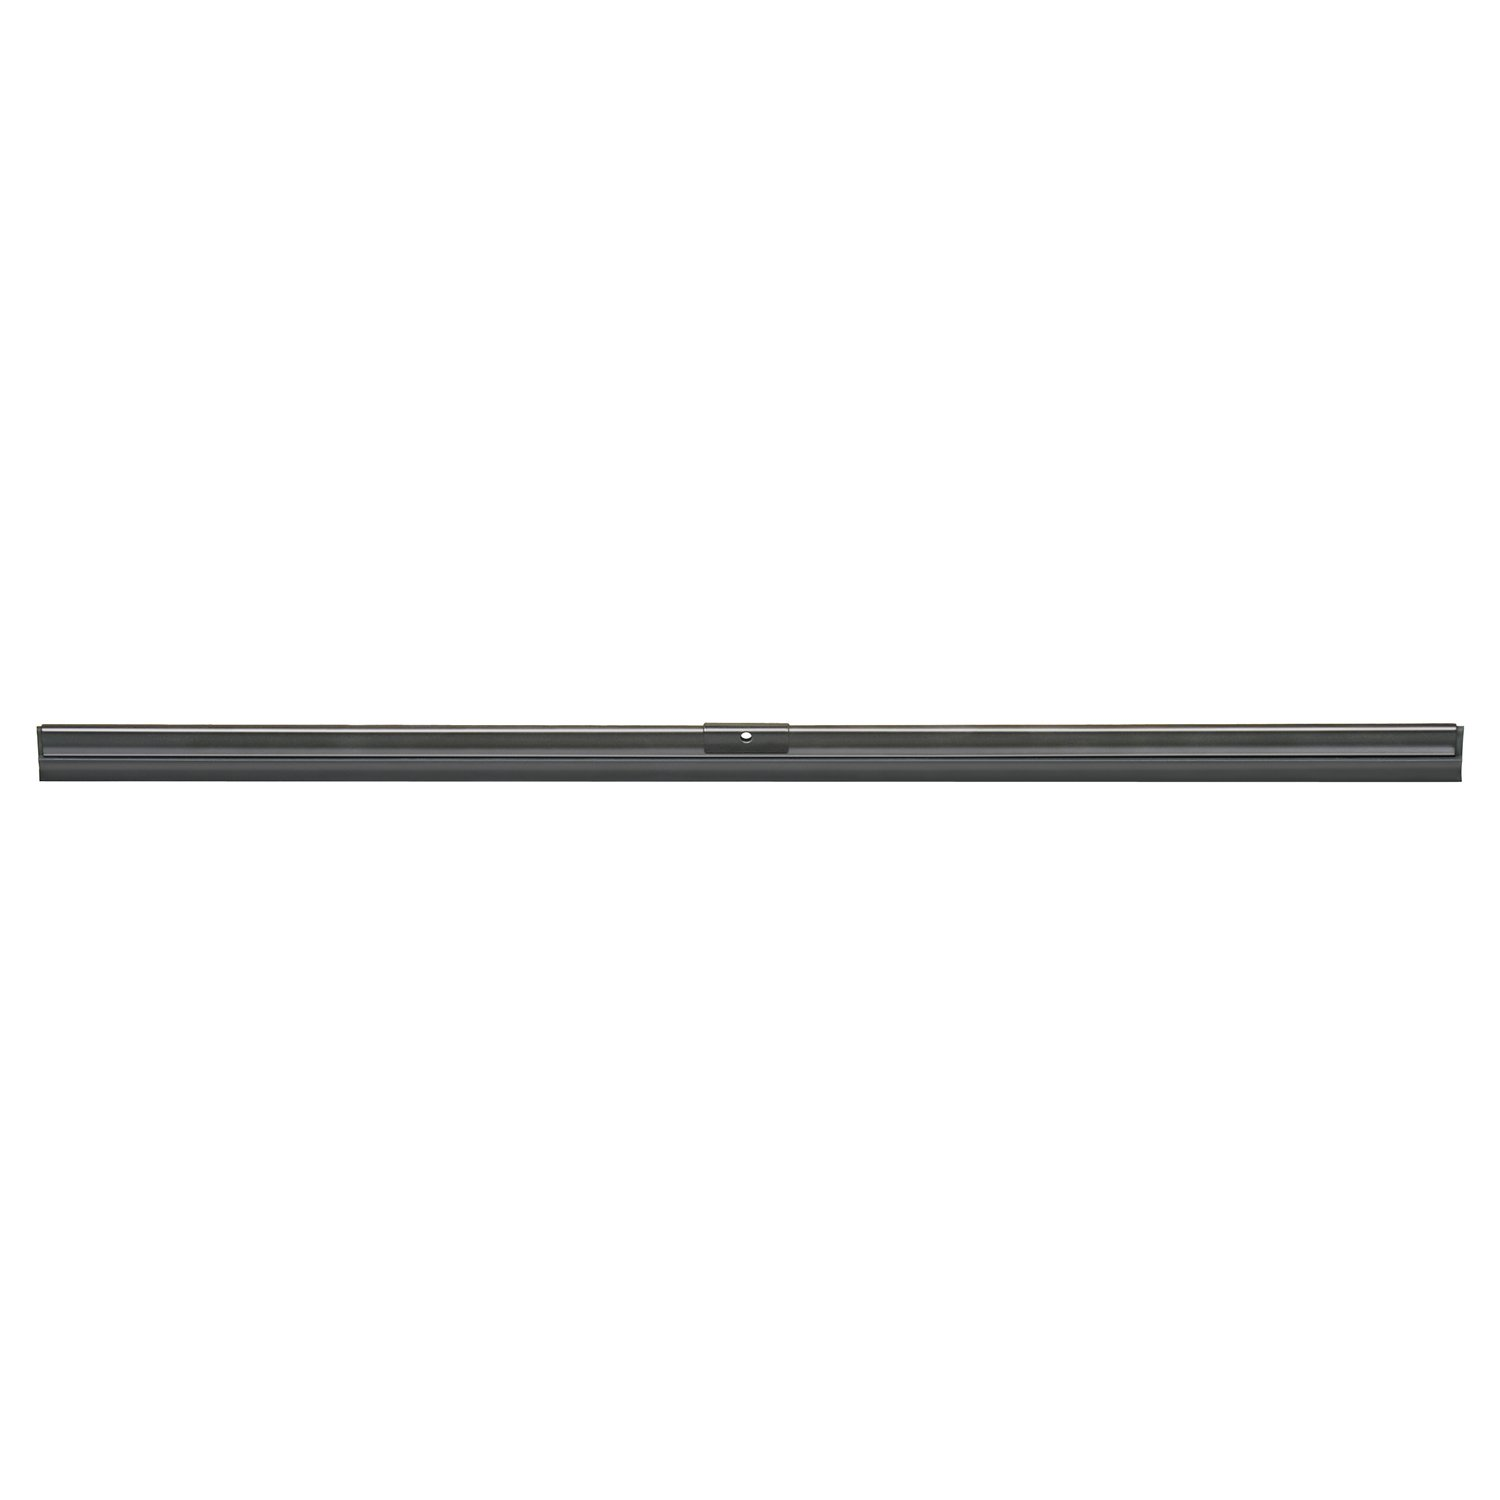 Pack of 1 ACDelco 8-7161 Professional Heavy Duty Silver Wiper Blade for Flat Windshields 16 in